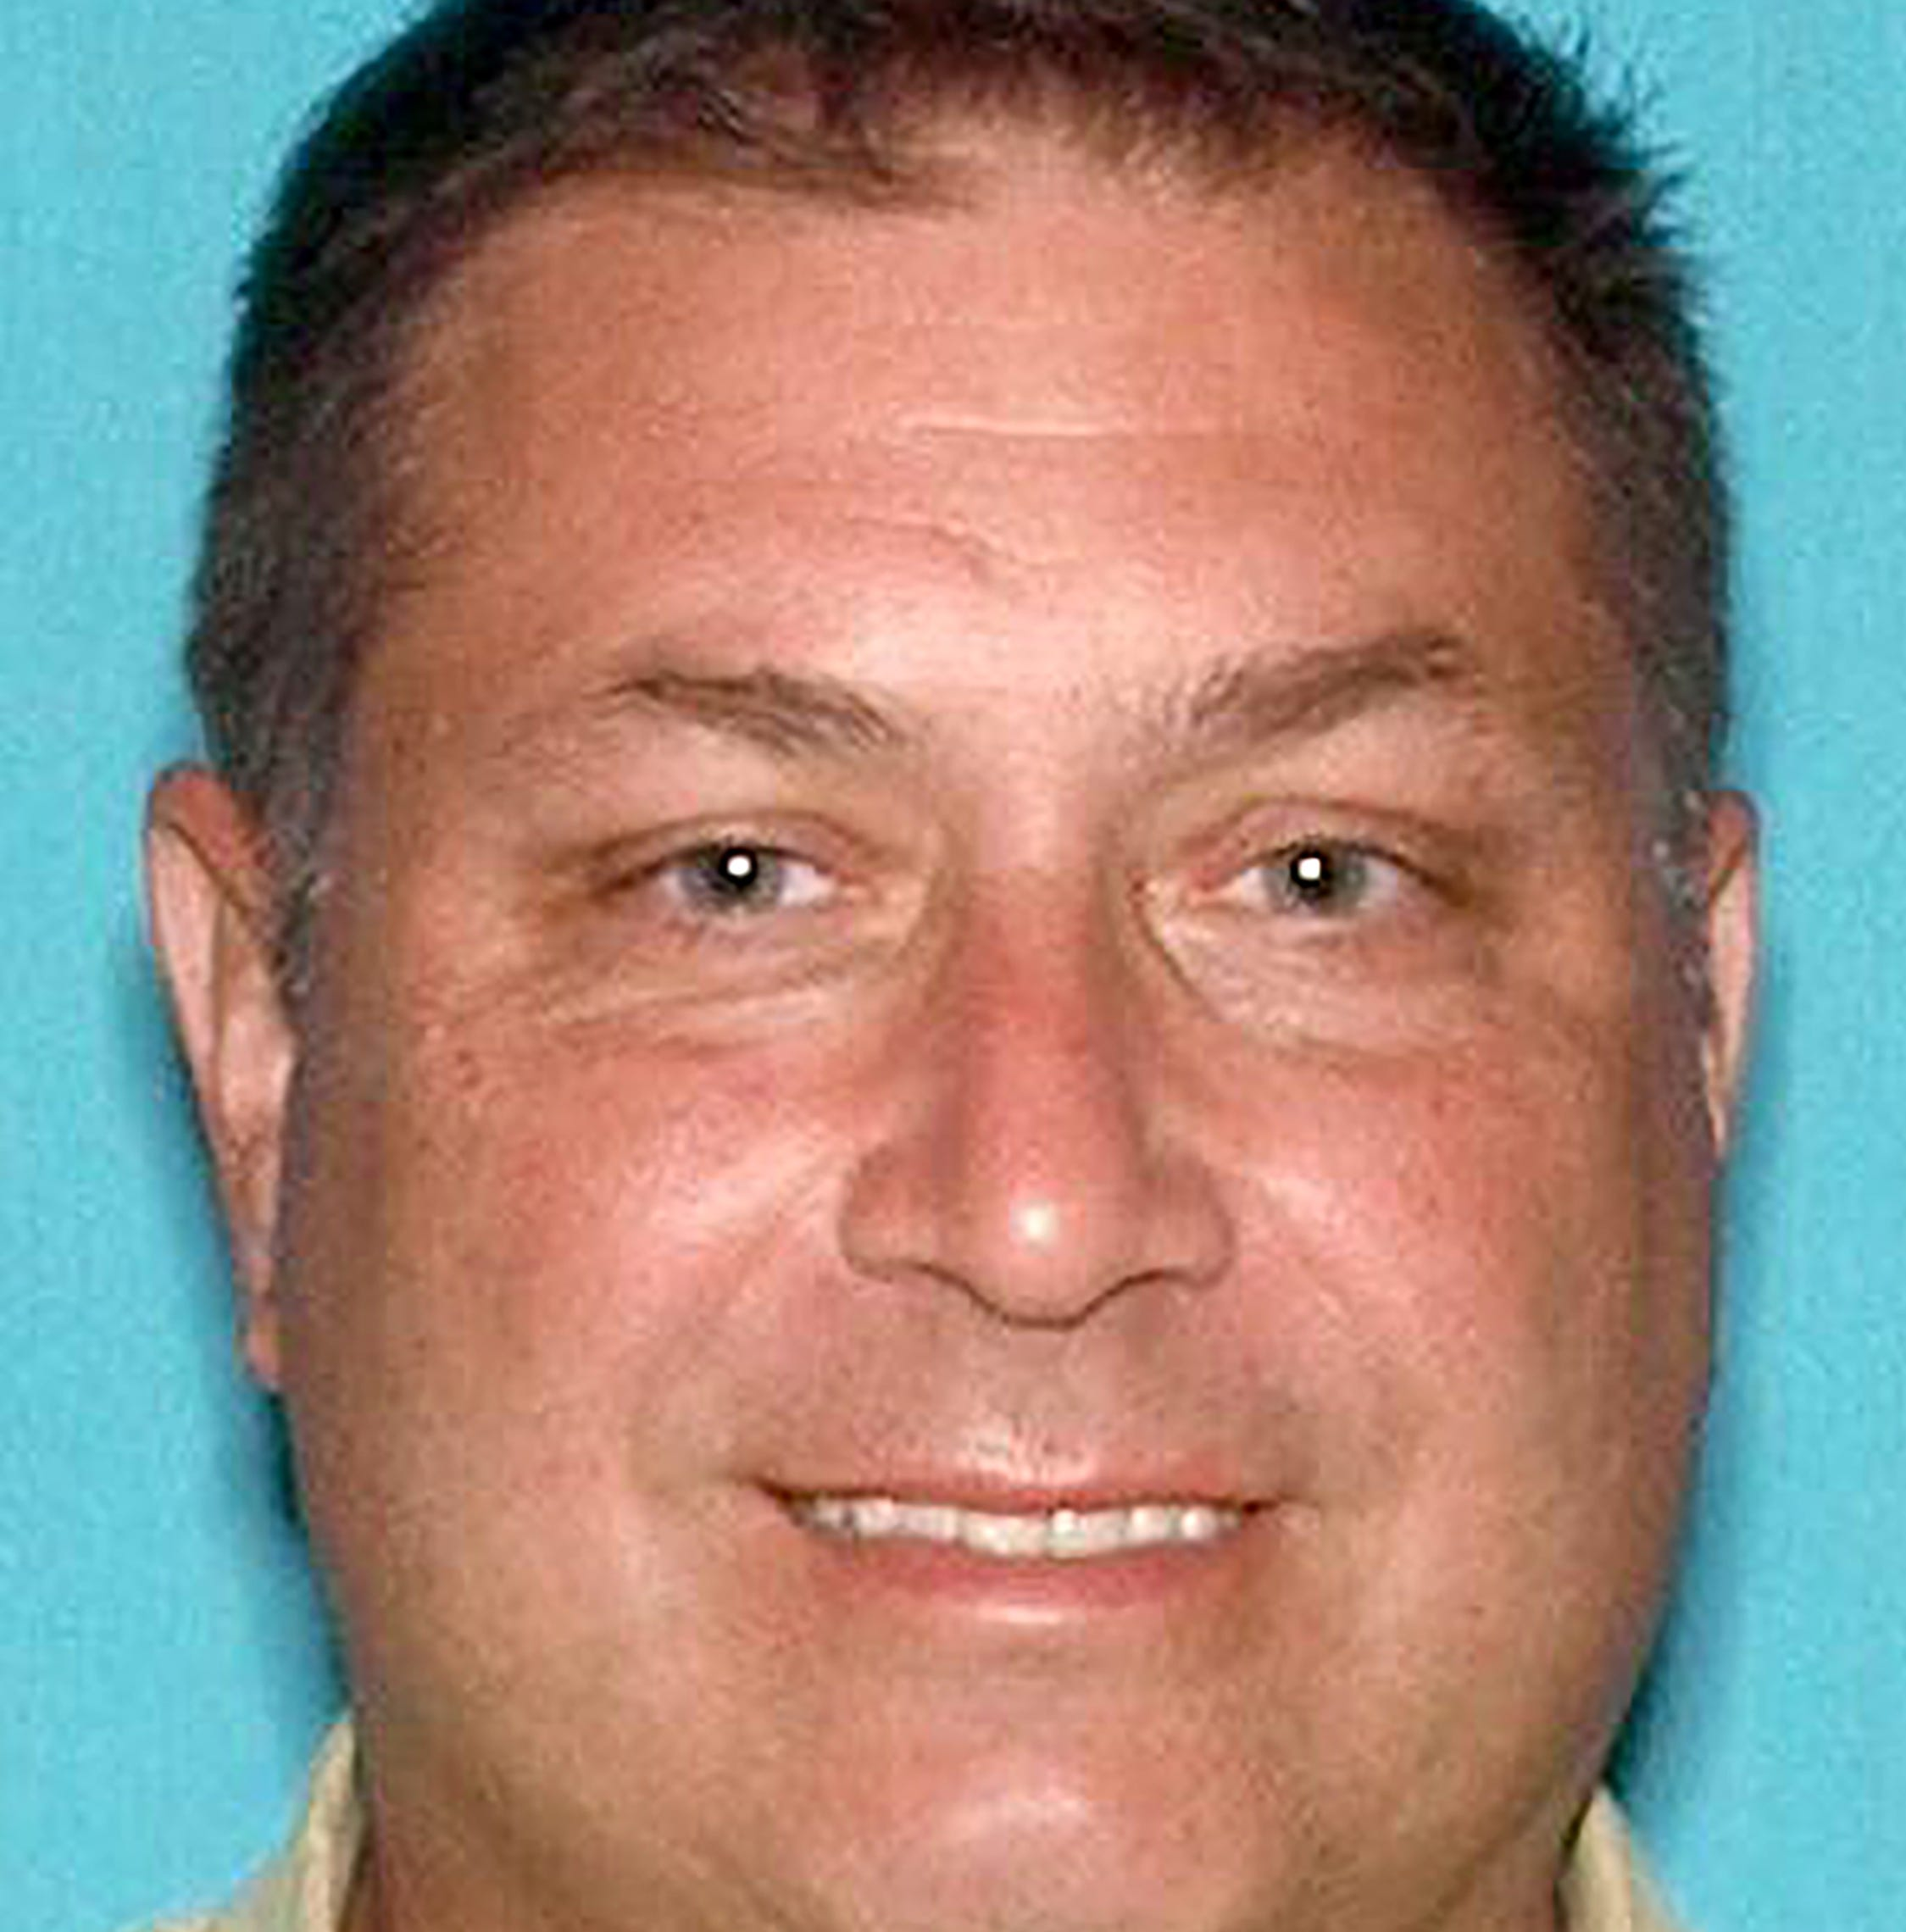 Victim's brother in New Jersey mansion fire arrested, charged with torching his own home